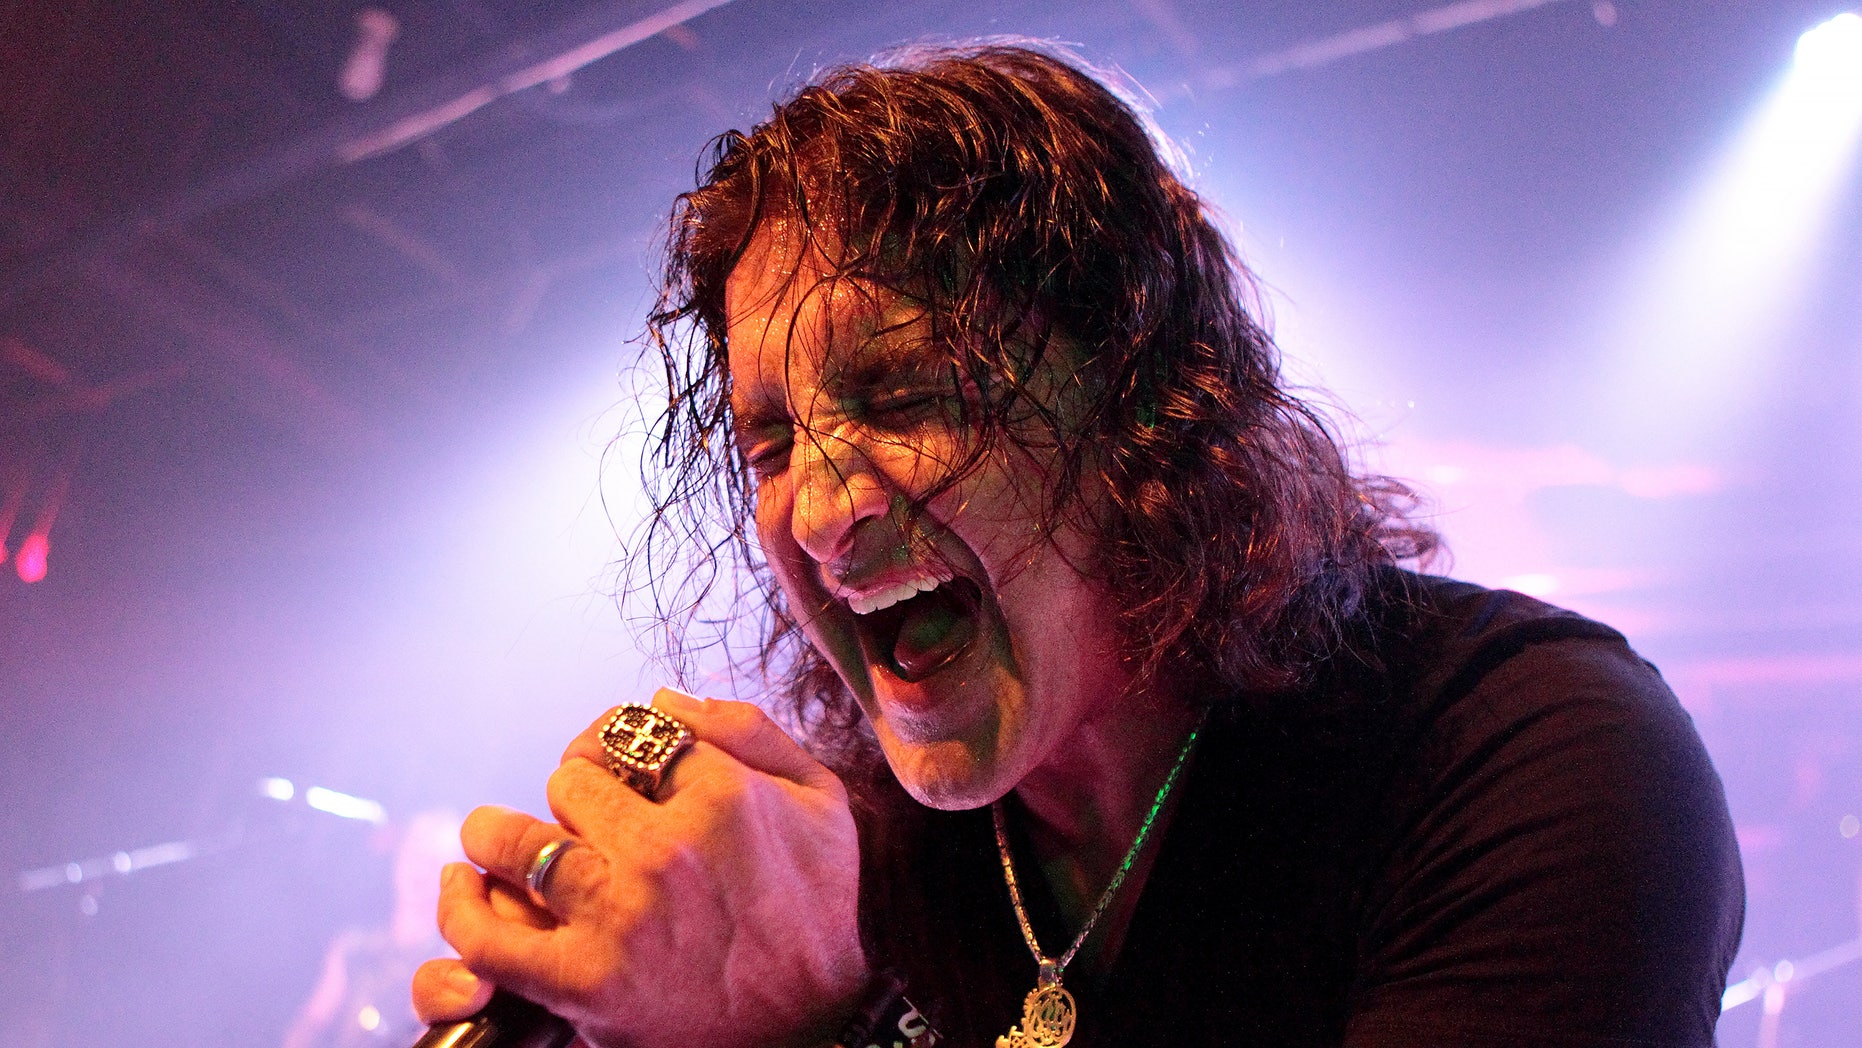 April 6, 2014. Scott Stapp, of the band Creed, performs solo in concert at Soundstage, in Baltimore.